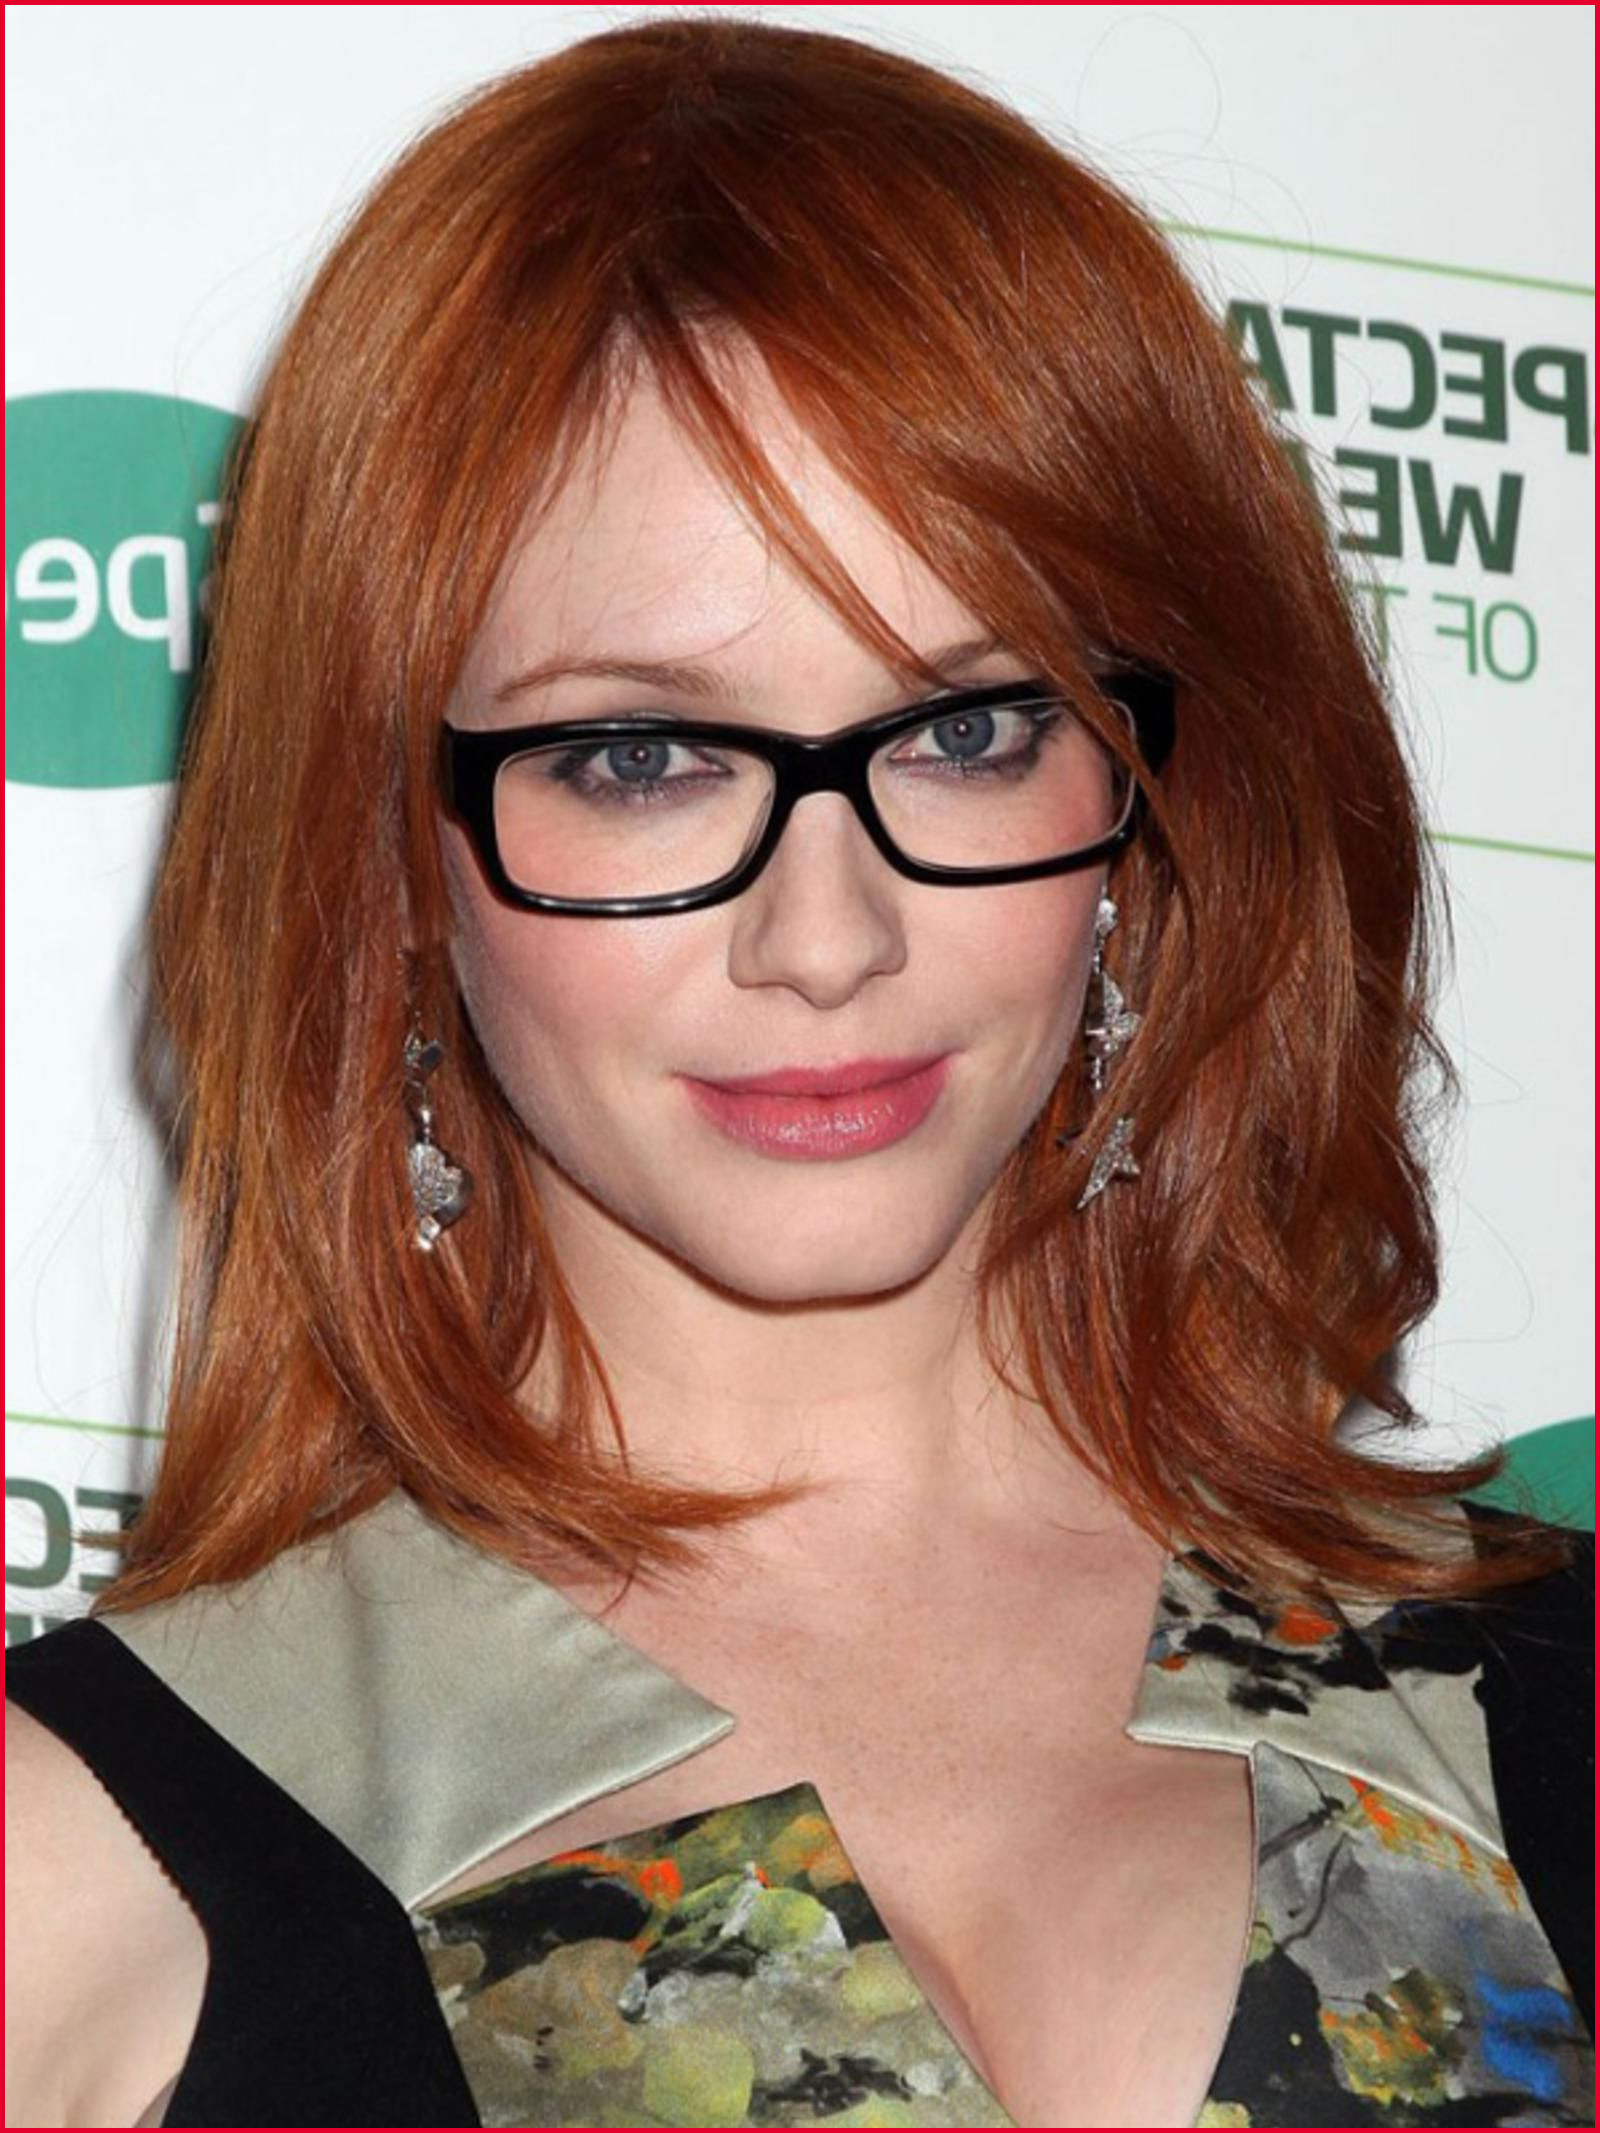 Best Hairstyles For Glasses 342992 What Are The Best Hairstyles To With Short Haircuts For Glasses Wearer (View 25 of 25)